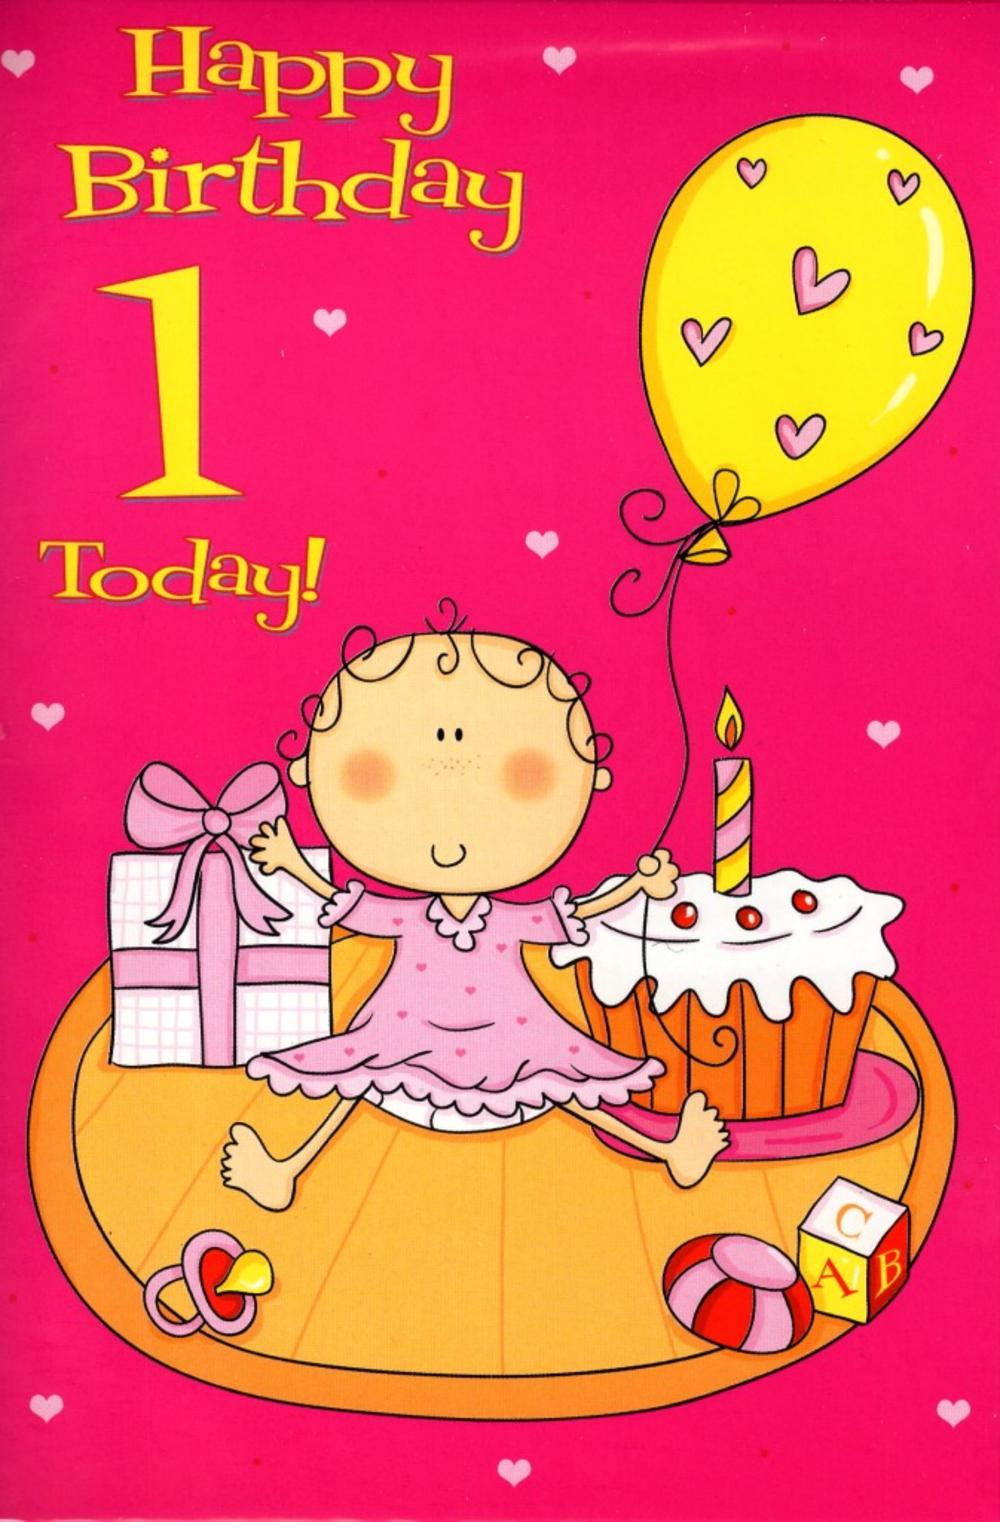 1 Today Special Age Baby 1st Birthday Card